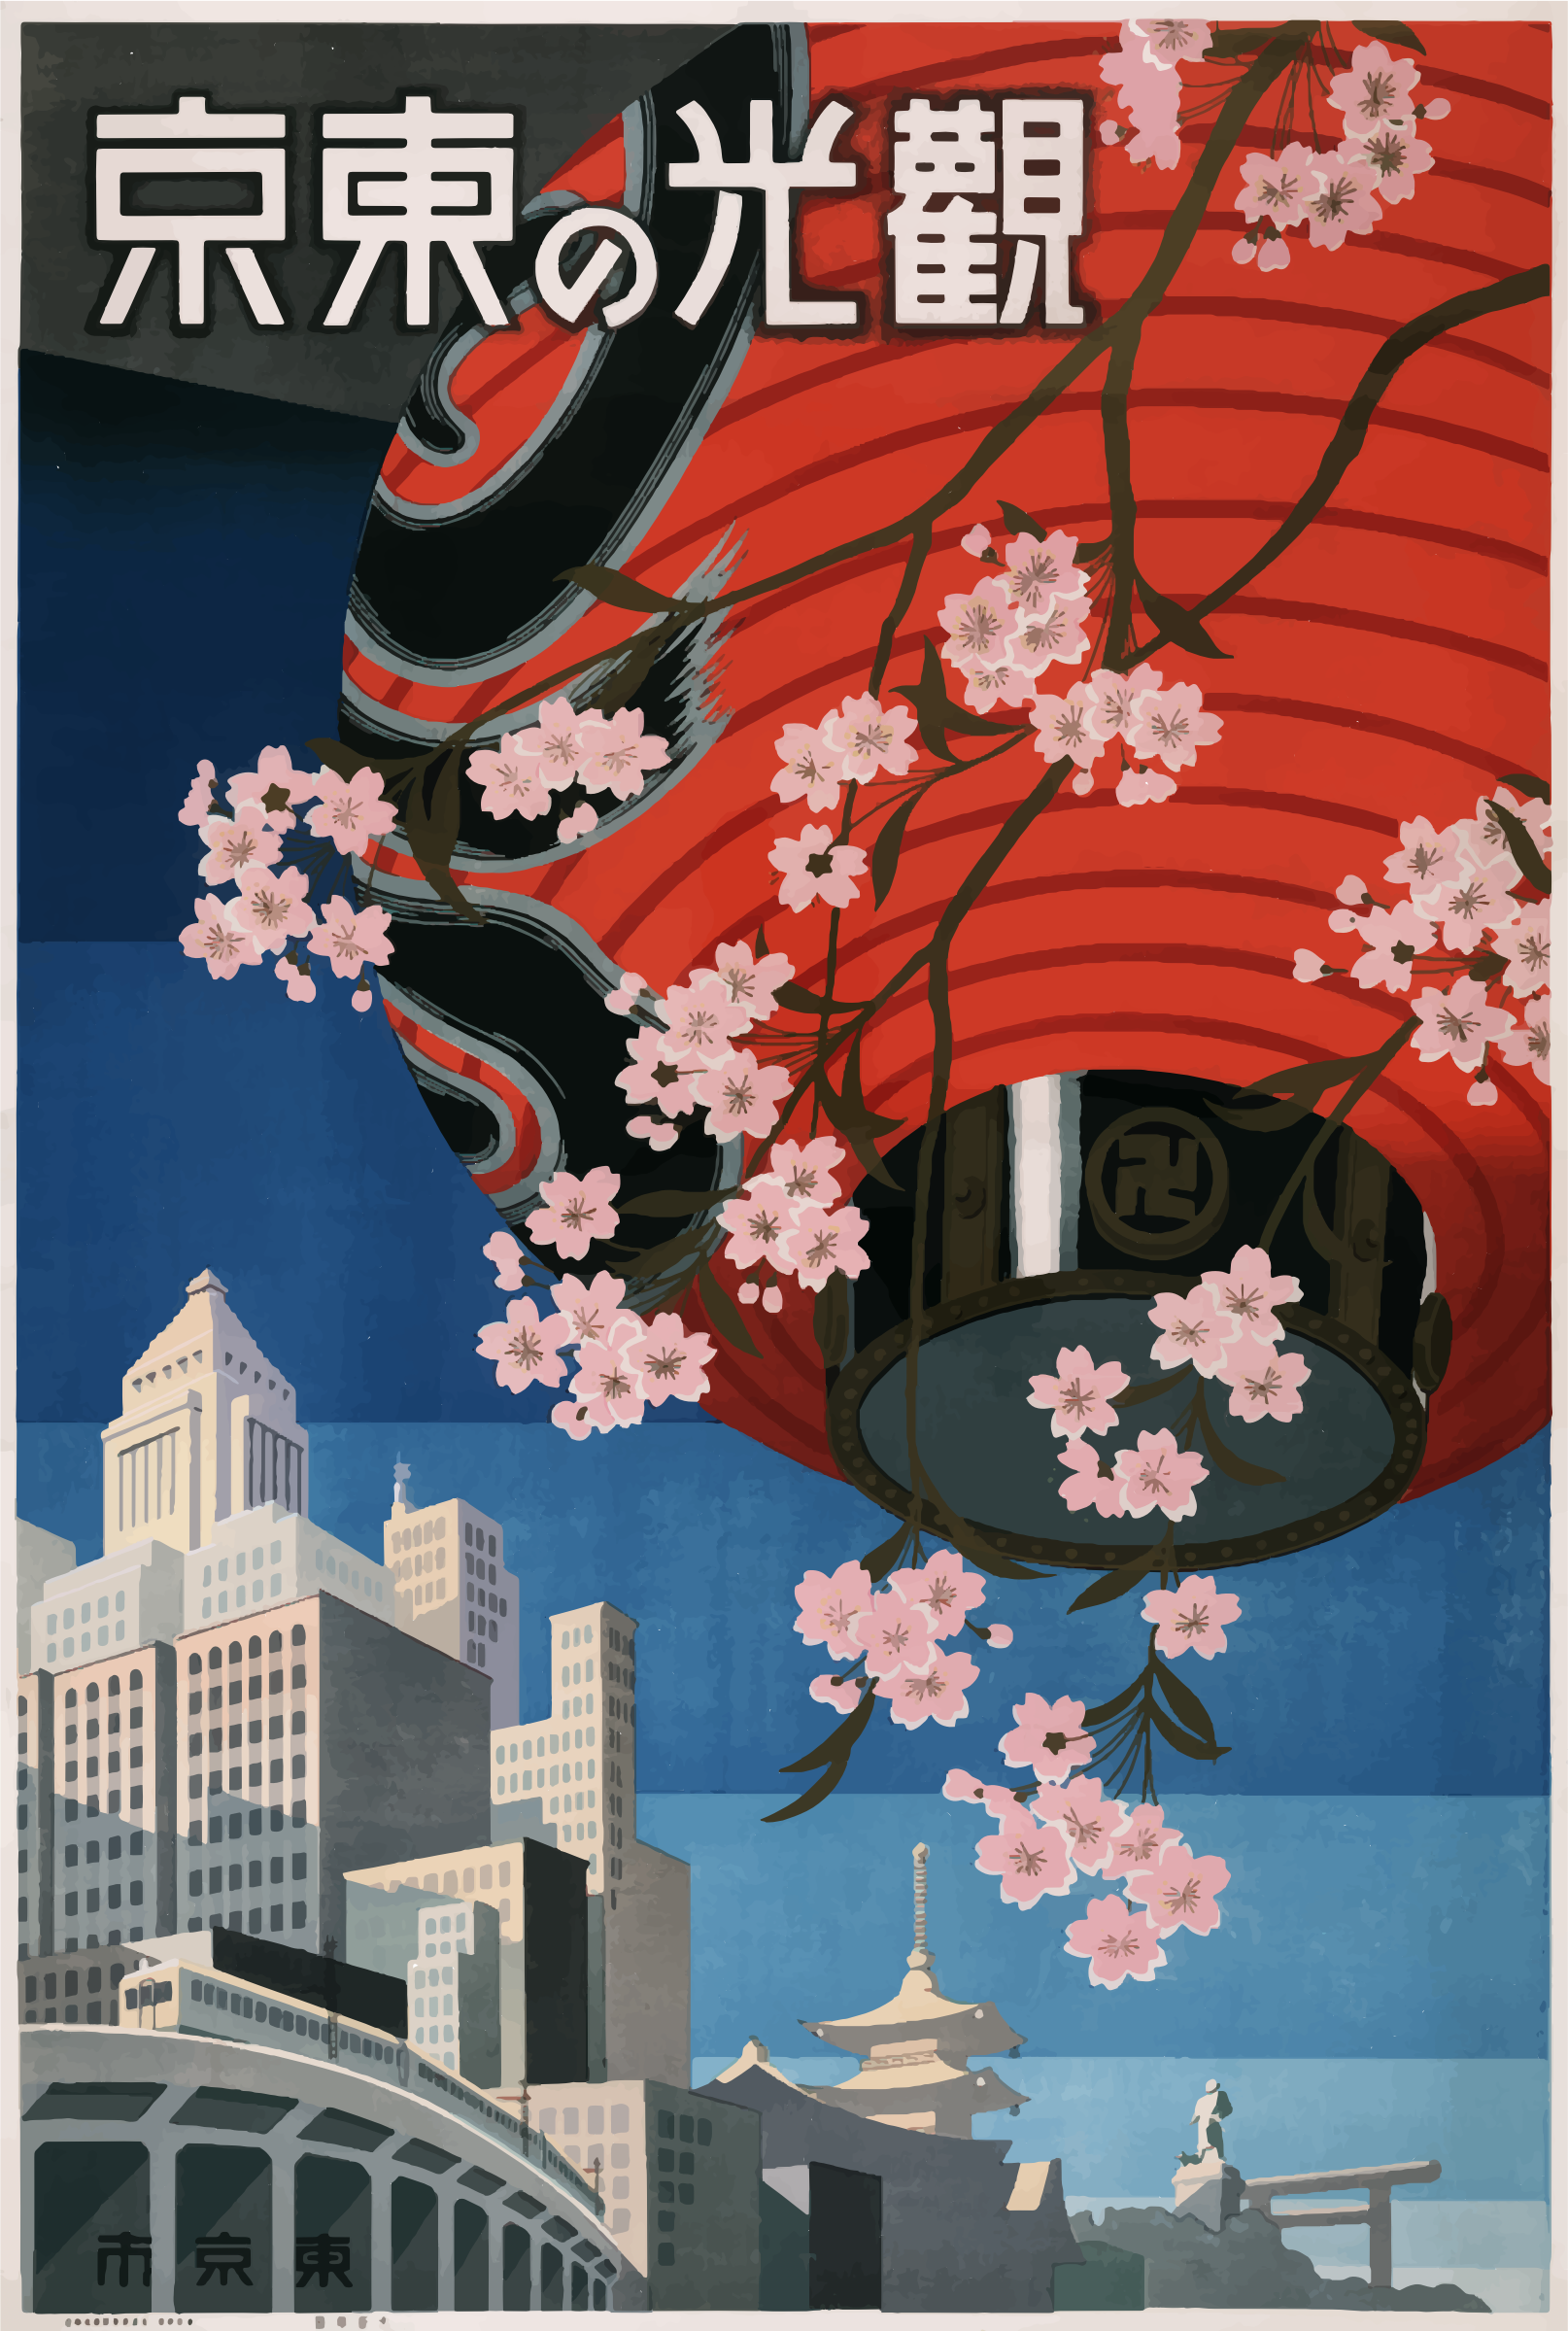 1df25b7ab93a Vintage Travel Poster Tokyo Japan 1930s by @GDJ, Vintage Travel ...